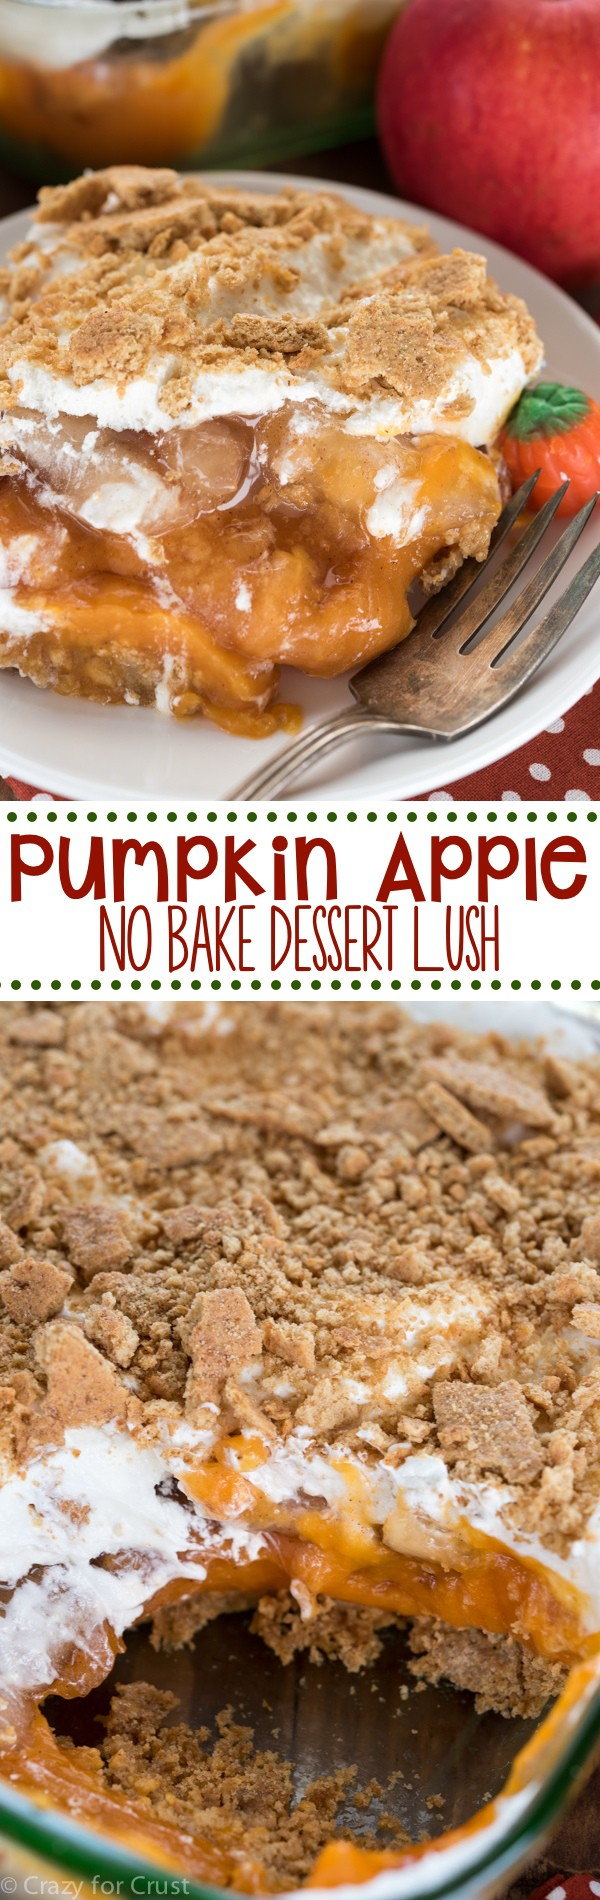 Pumpkin Apple No Bake Dessert Lush - such an easy recipe! No-bake pumpkin pie is mixed with apple pie and a cinnamon graham crust!